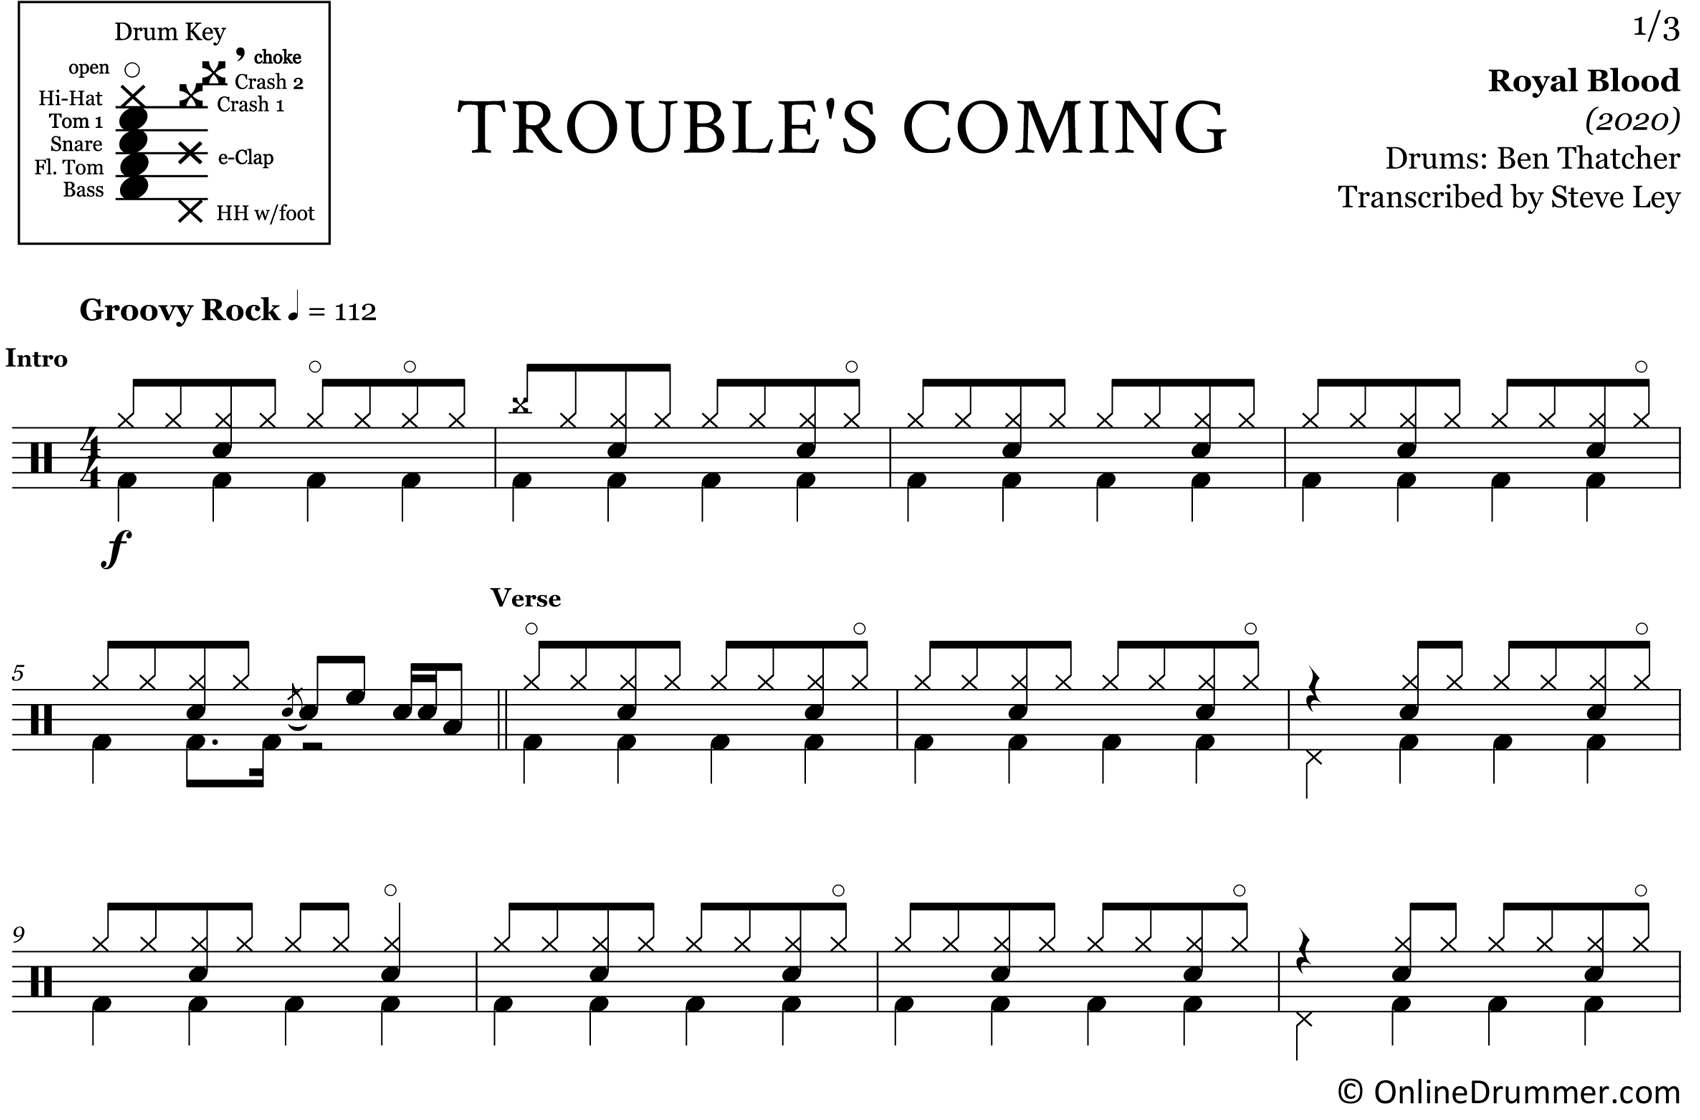 Trouble's Coming - Royal Blood - Drum Sheet Music